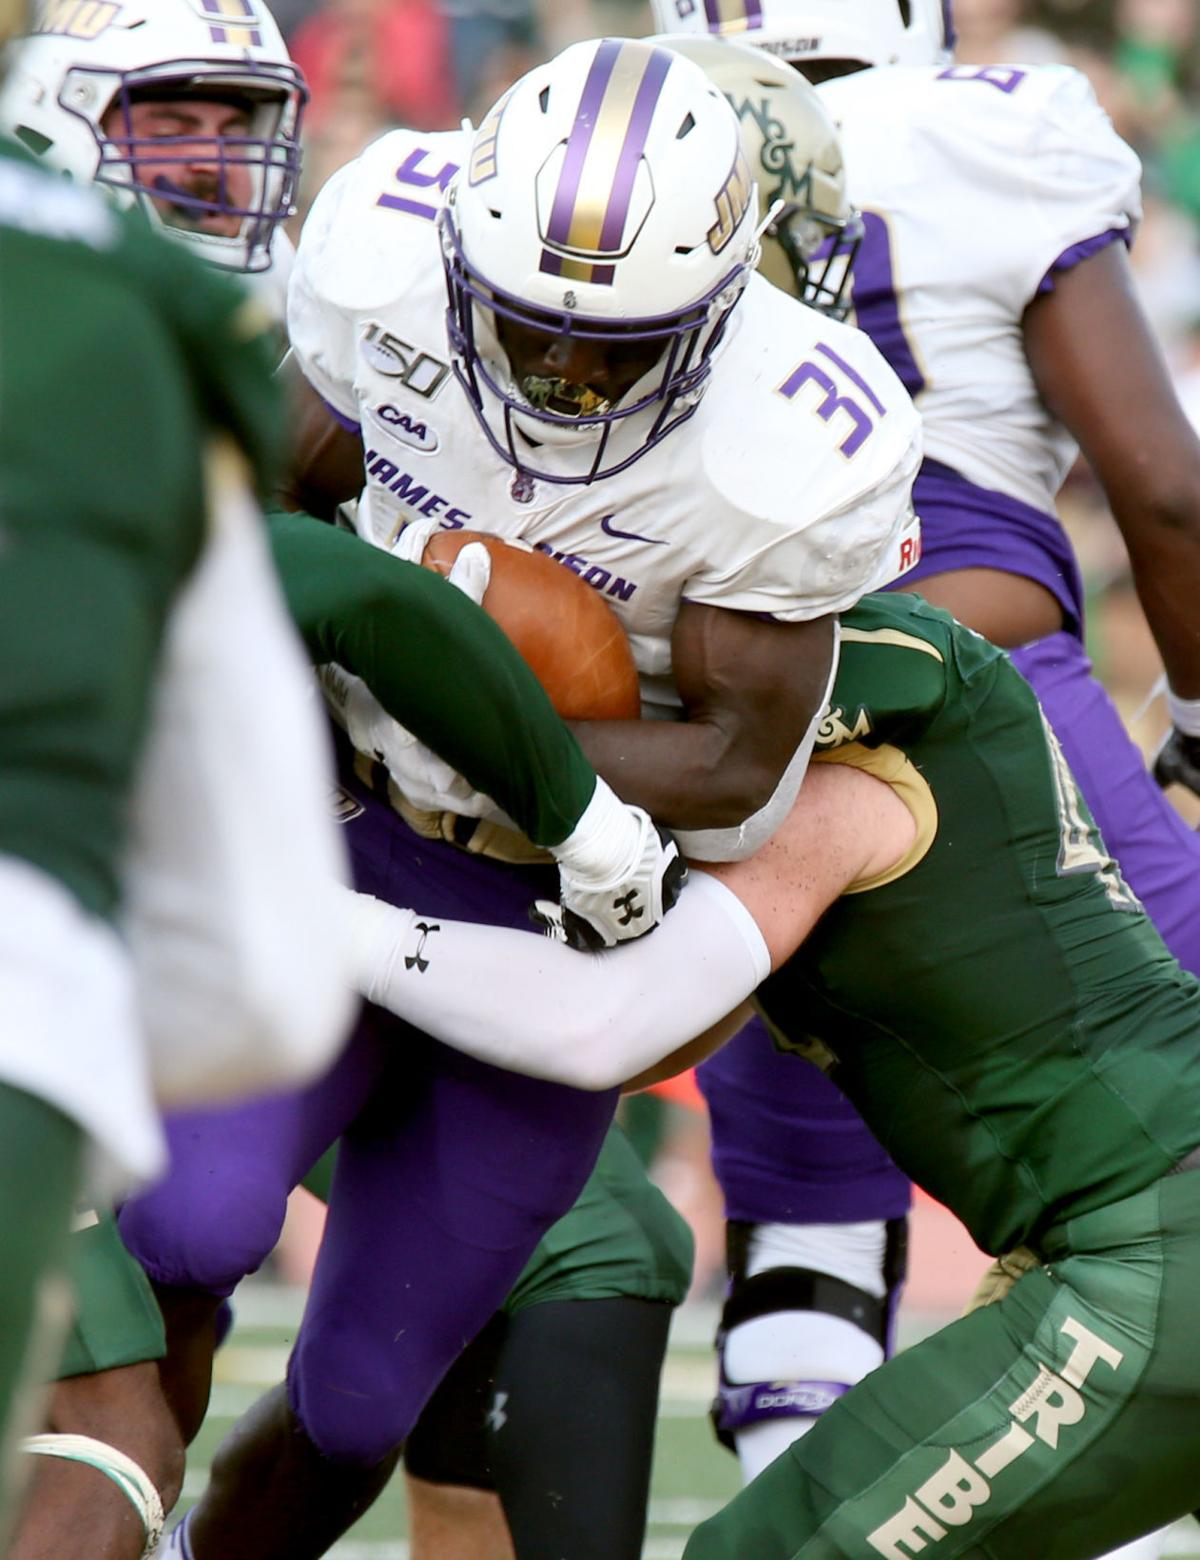 JMU at W&M football